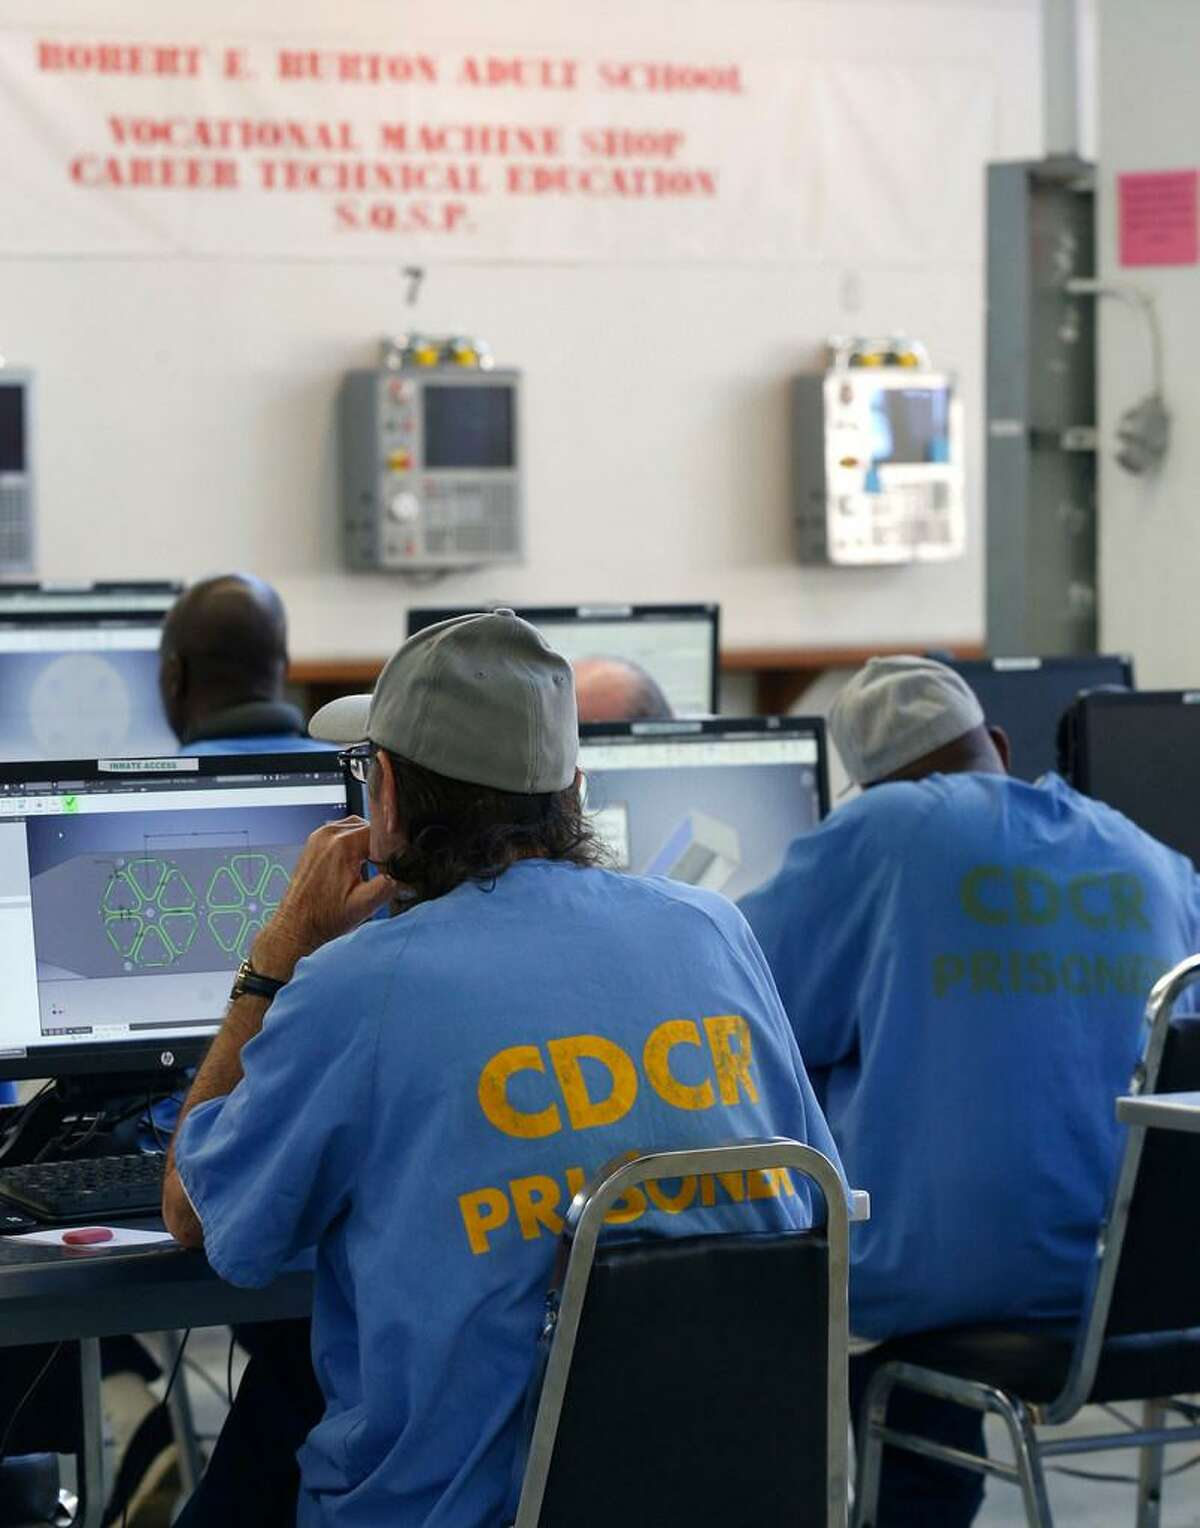 """Inmate students use computers in a vocational machine shop class of the Robert E. Burton Adult School at San Quentin State Prison in San Quentin, Calif. on Thursday, Sept. 12, 2019. Burton has been designated as a """"distinguished school,"""" the first school within the California corrections system to achieve the honor."""